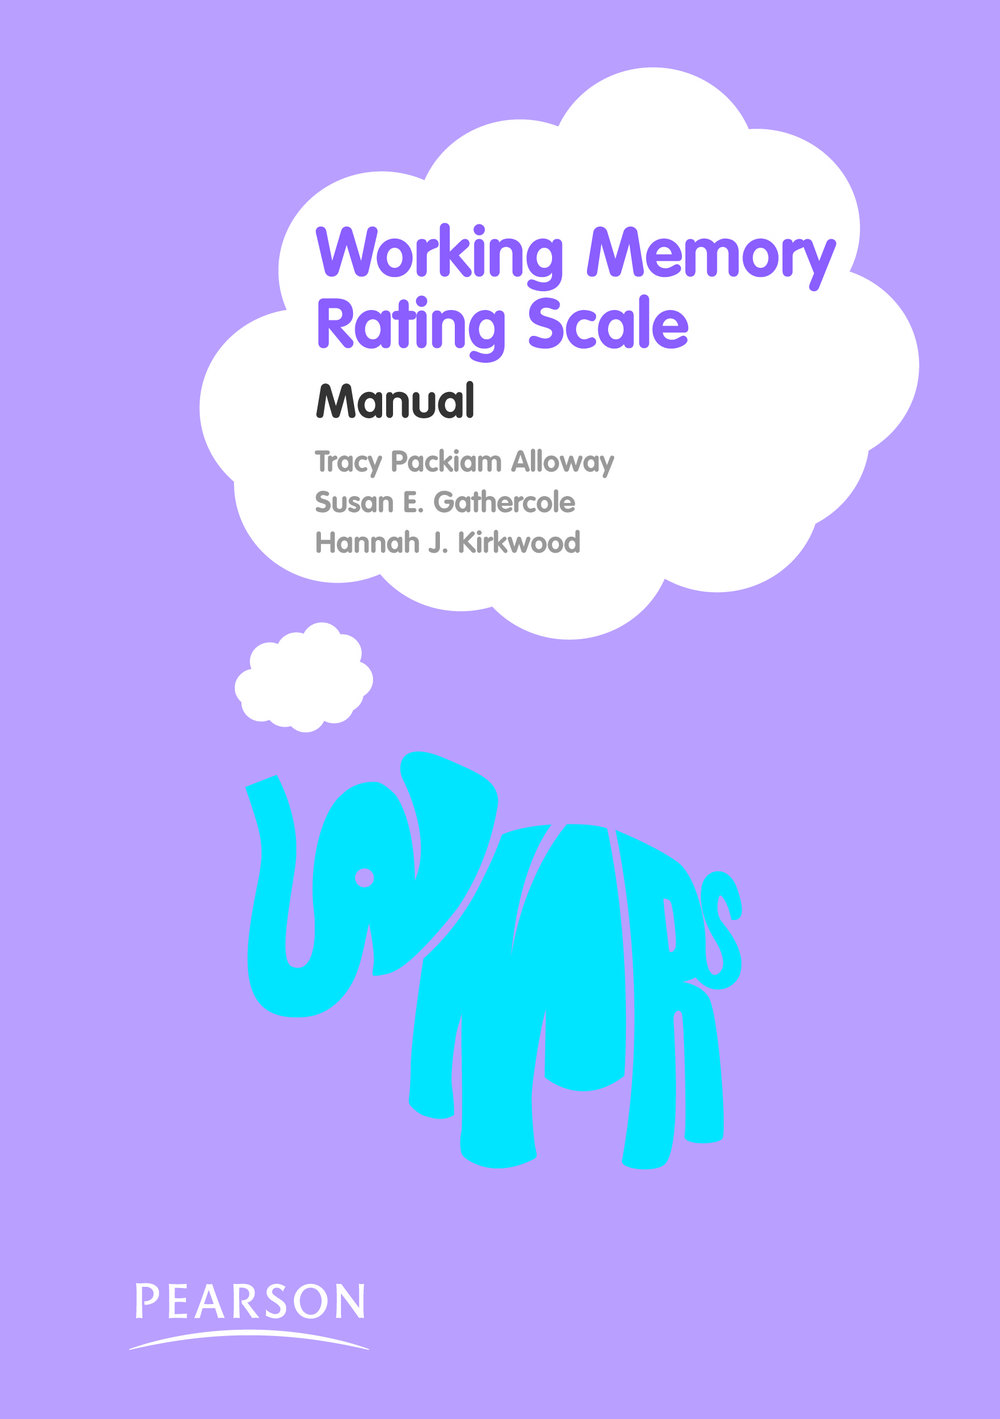 WMRS - Purpose: Identify classroom behaviors associated with working memory deficitsAge Range: 5 to 11 yearsAdministration: Paper & pencilScoring: Manual BUY AUSTRALIABUY CANADABUY UK